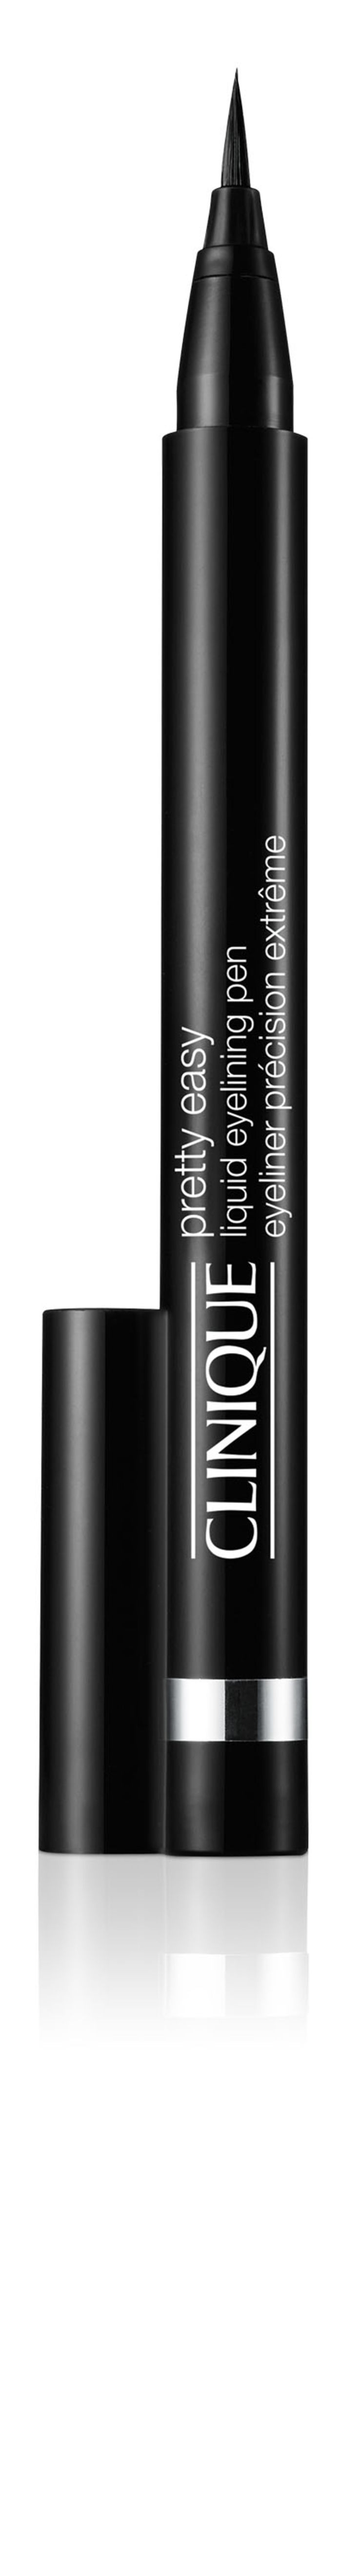 NEW Clinique Pretty Easy Liquid Eyelining Pen is a tapered, precision brush that easily paints on pure, deep colour in a continuous, even and defined line. It promises 12-hour smudge resistant and transfer proof wear that can be used effortlessly to create a bold and dramatic look.